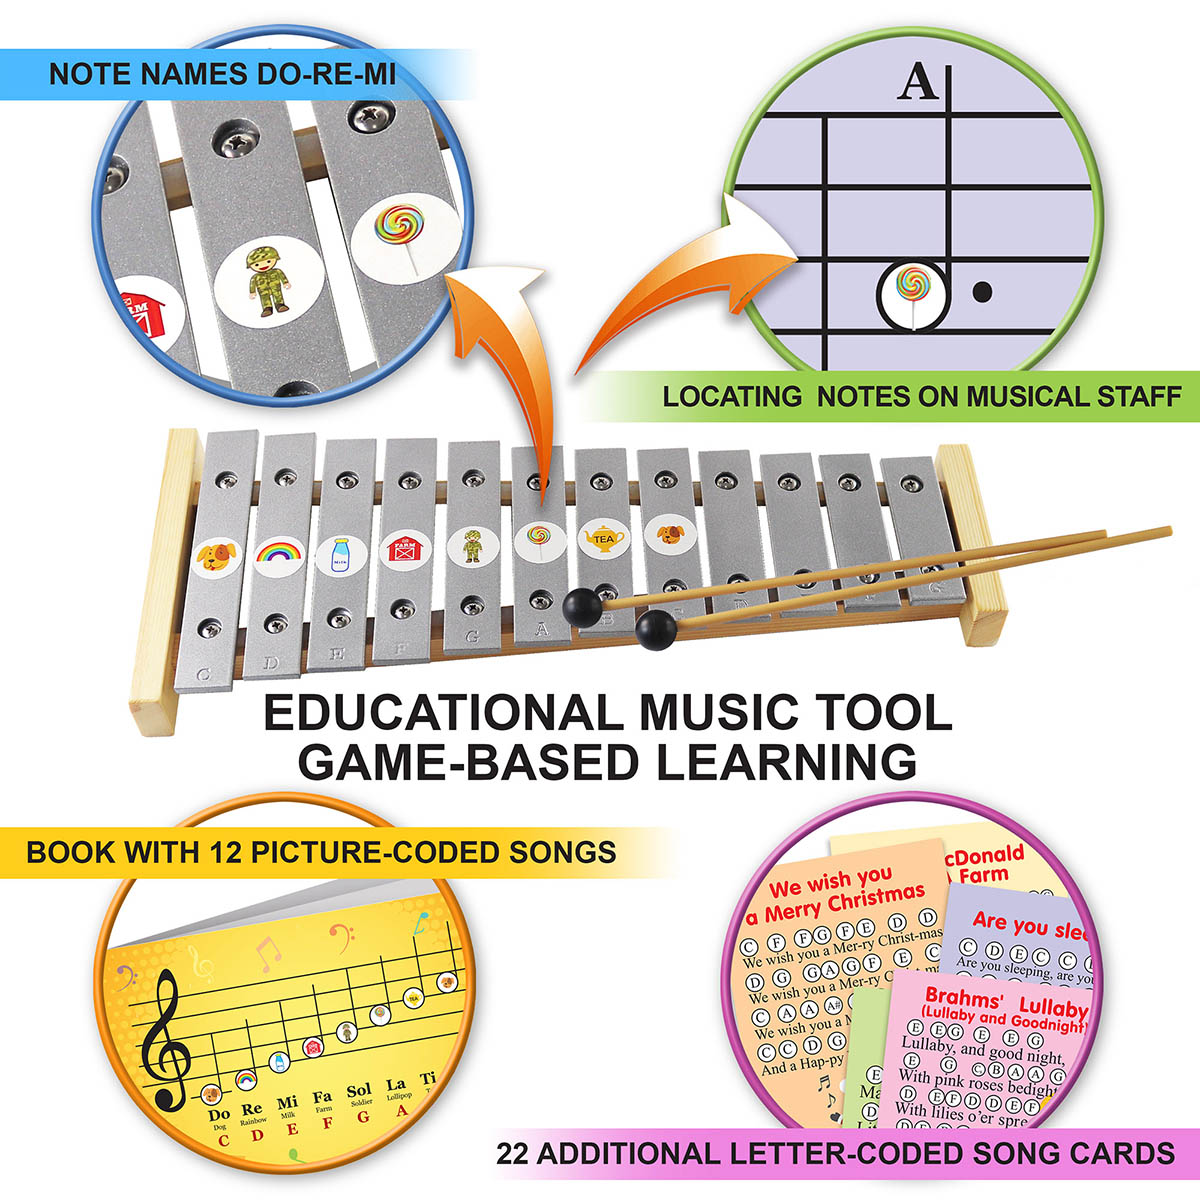 educational music tool game-based learning